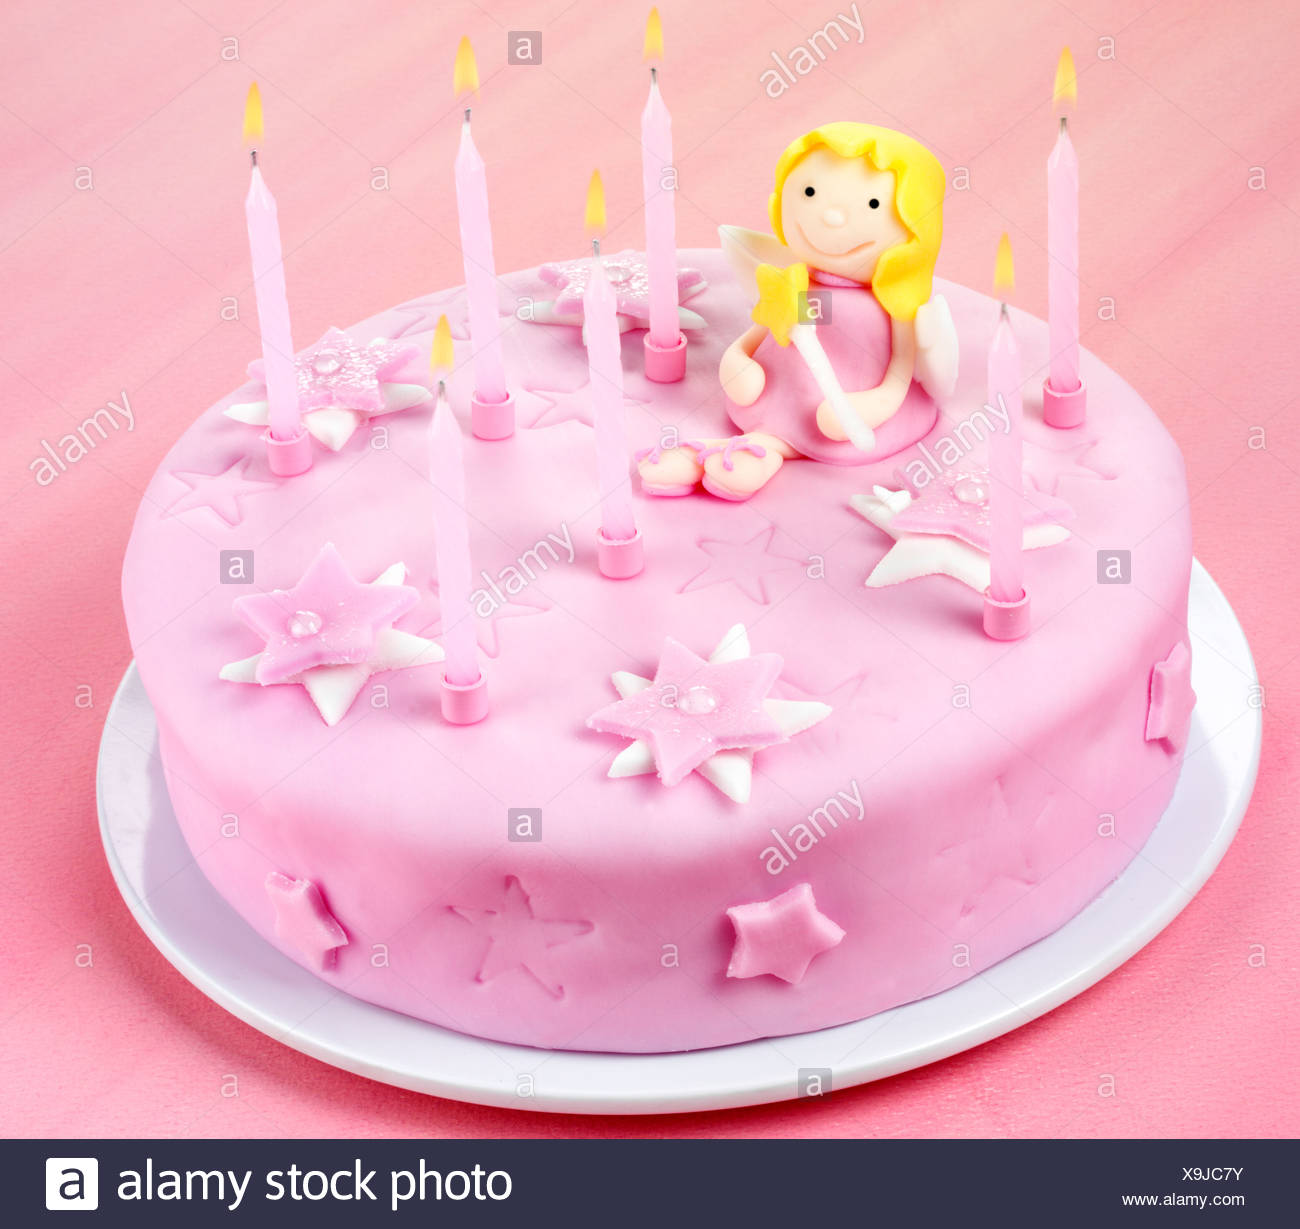 Swell Pink Fairy Birthday Cake Stock Photo 281302559 Alamy Funny Birthday Cards Online Overcheapnameinfo